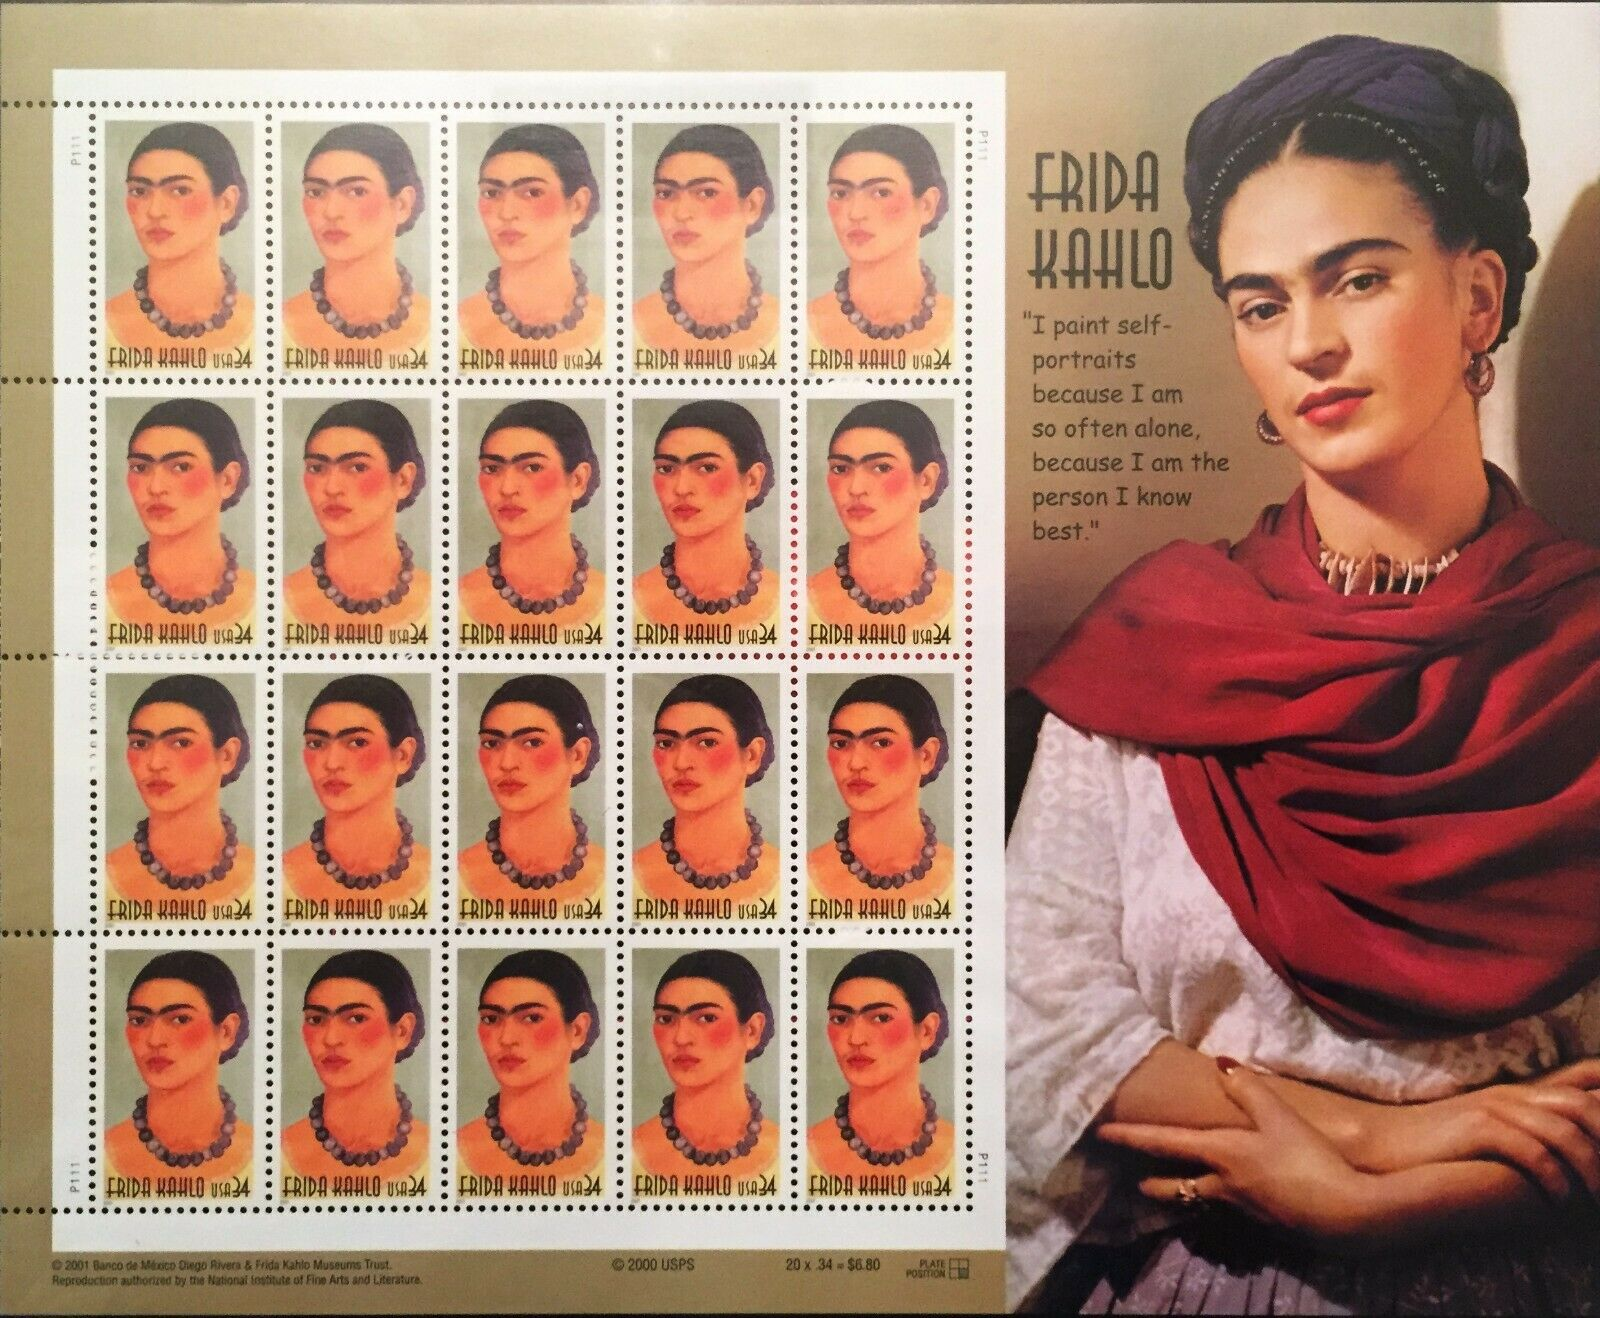 FRIDA KAHLO SET OF TWO FULL SHEETS OF MINT NEVER HINGED US MEXICO STAMPS - $60.00